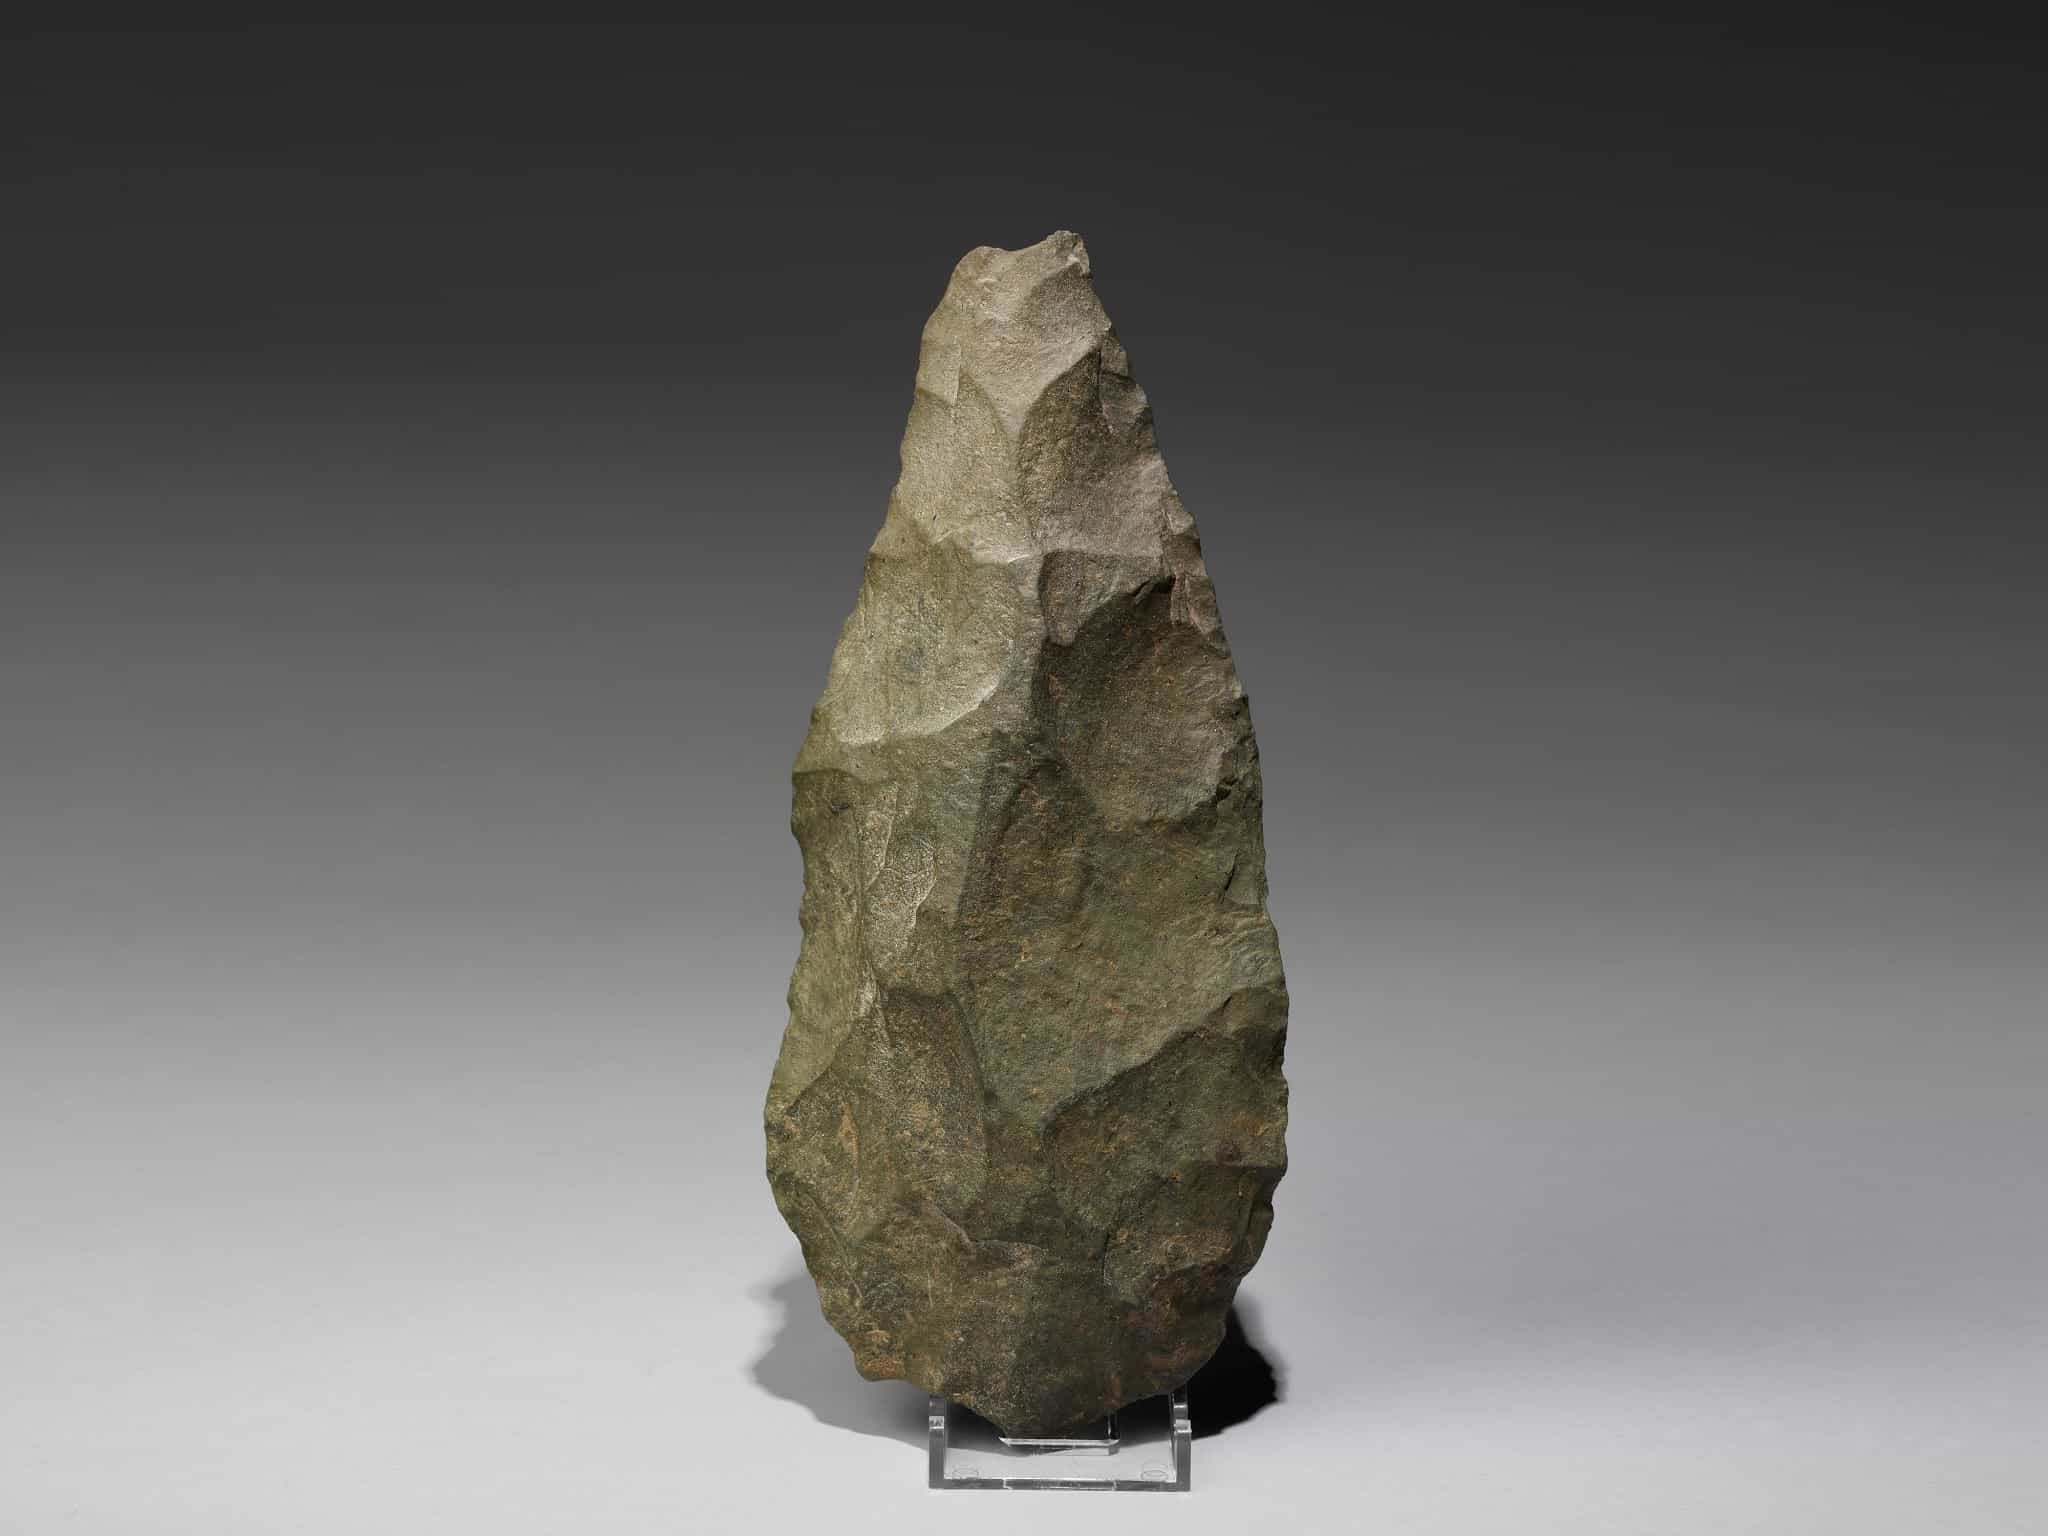 [enable images to see the handaxe]